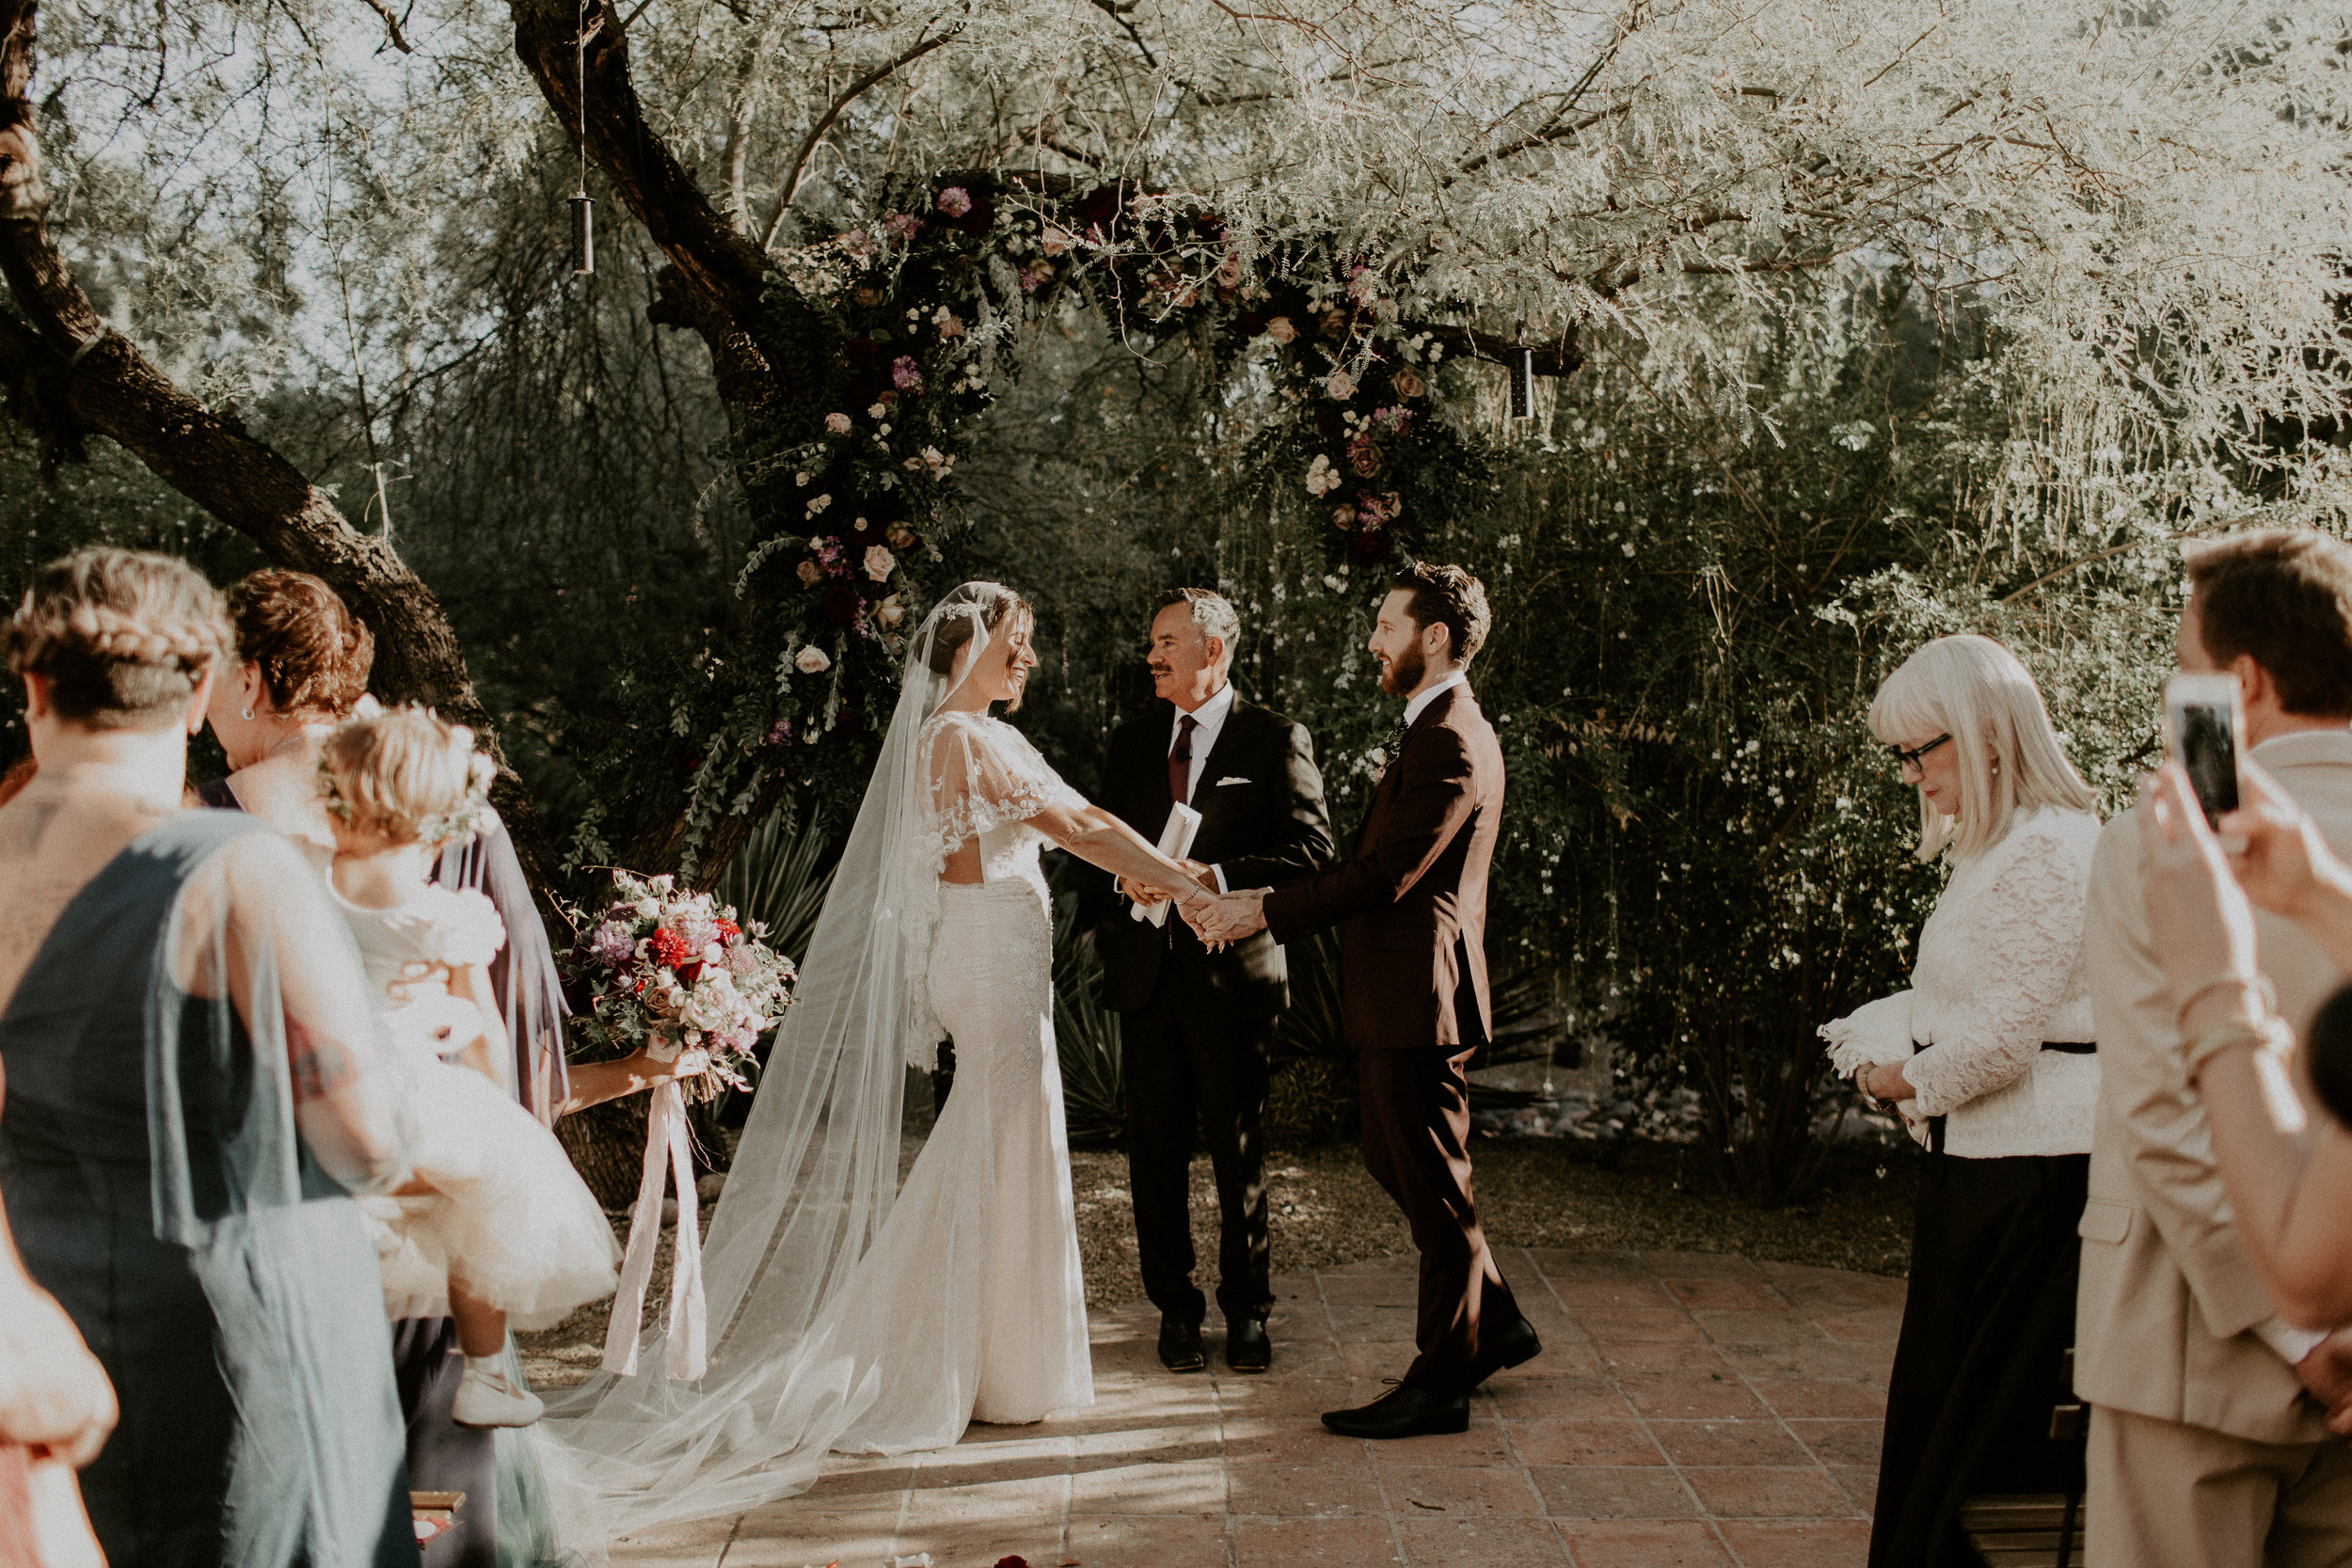 Moody Desert Wedding - Ceremony around floral tree installation